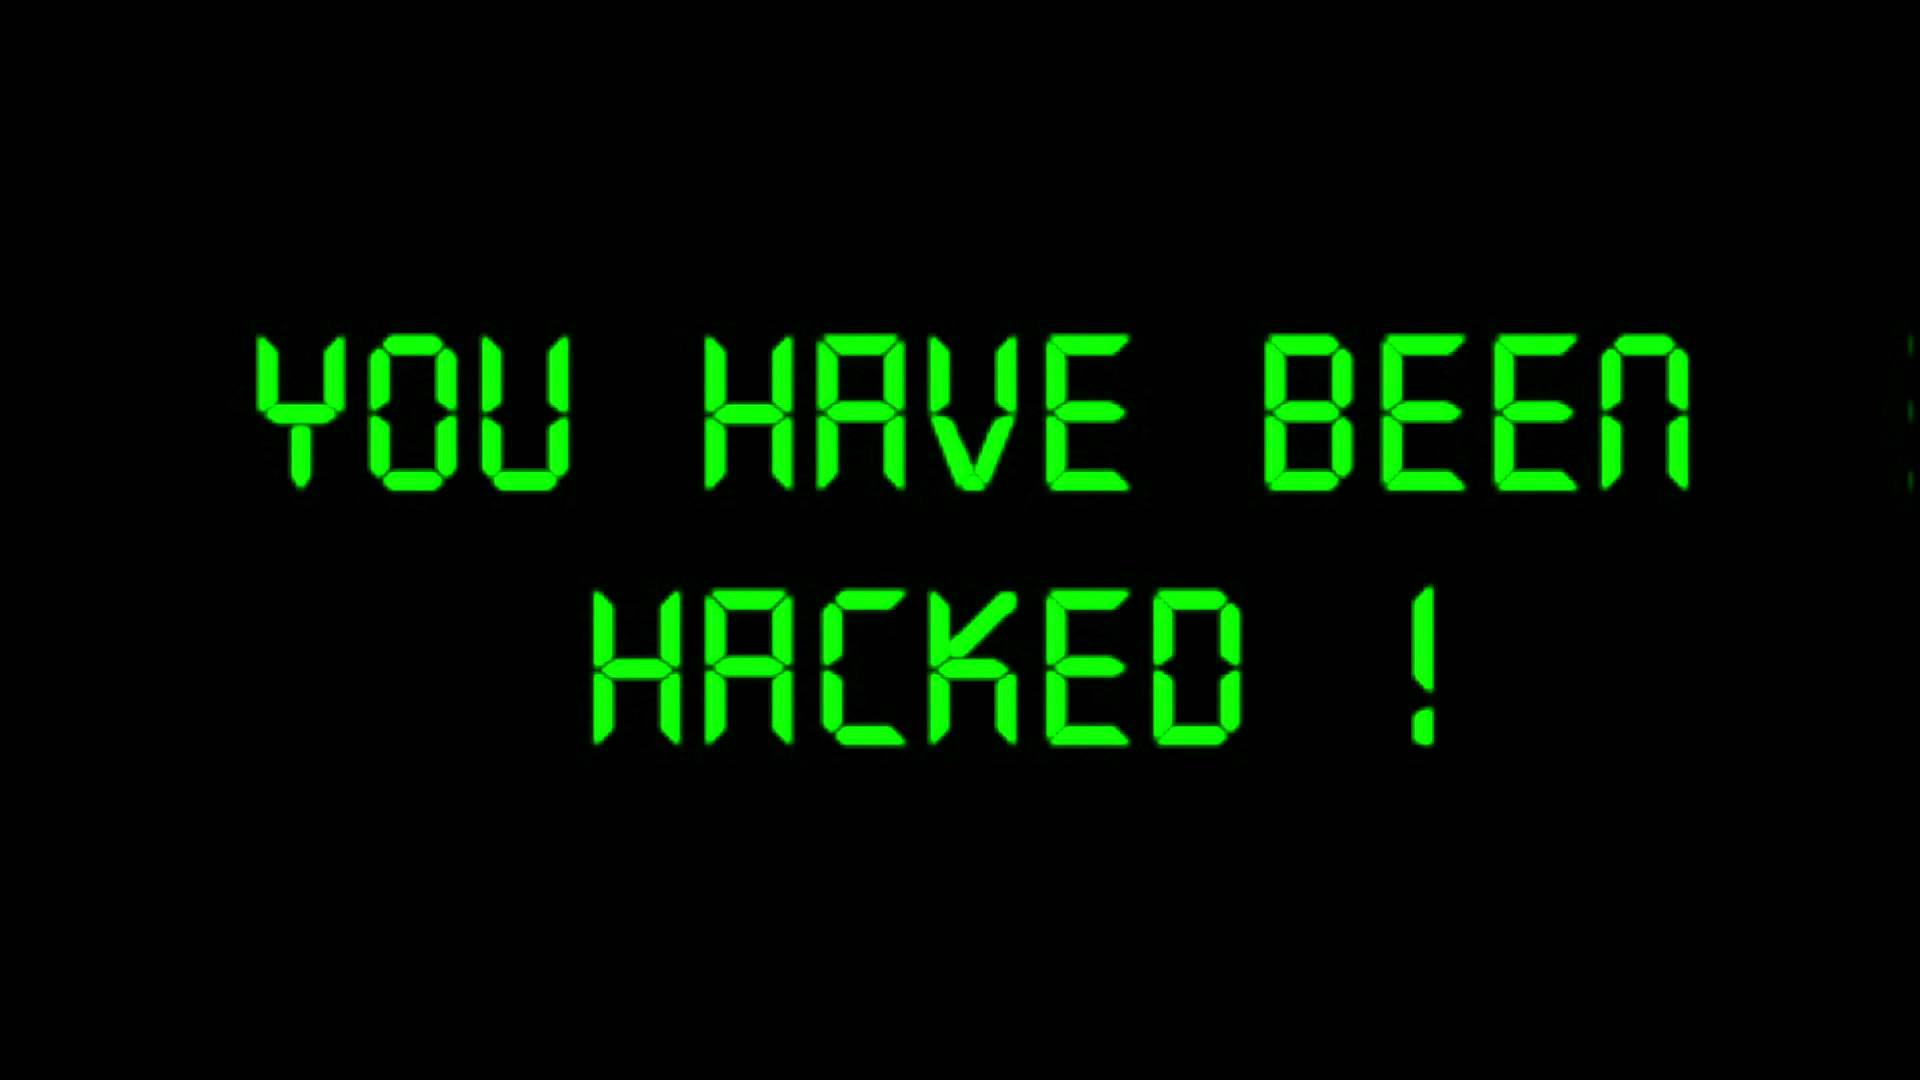 Hacked - personal internet security - Mike